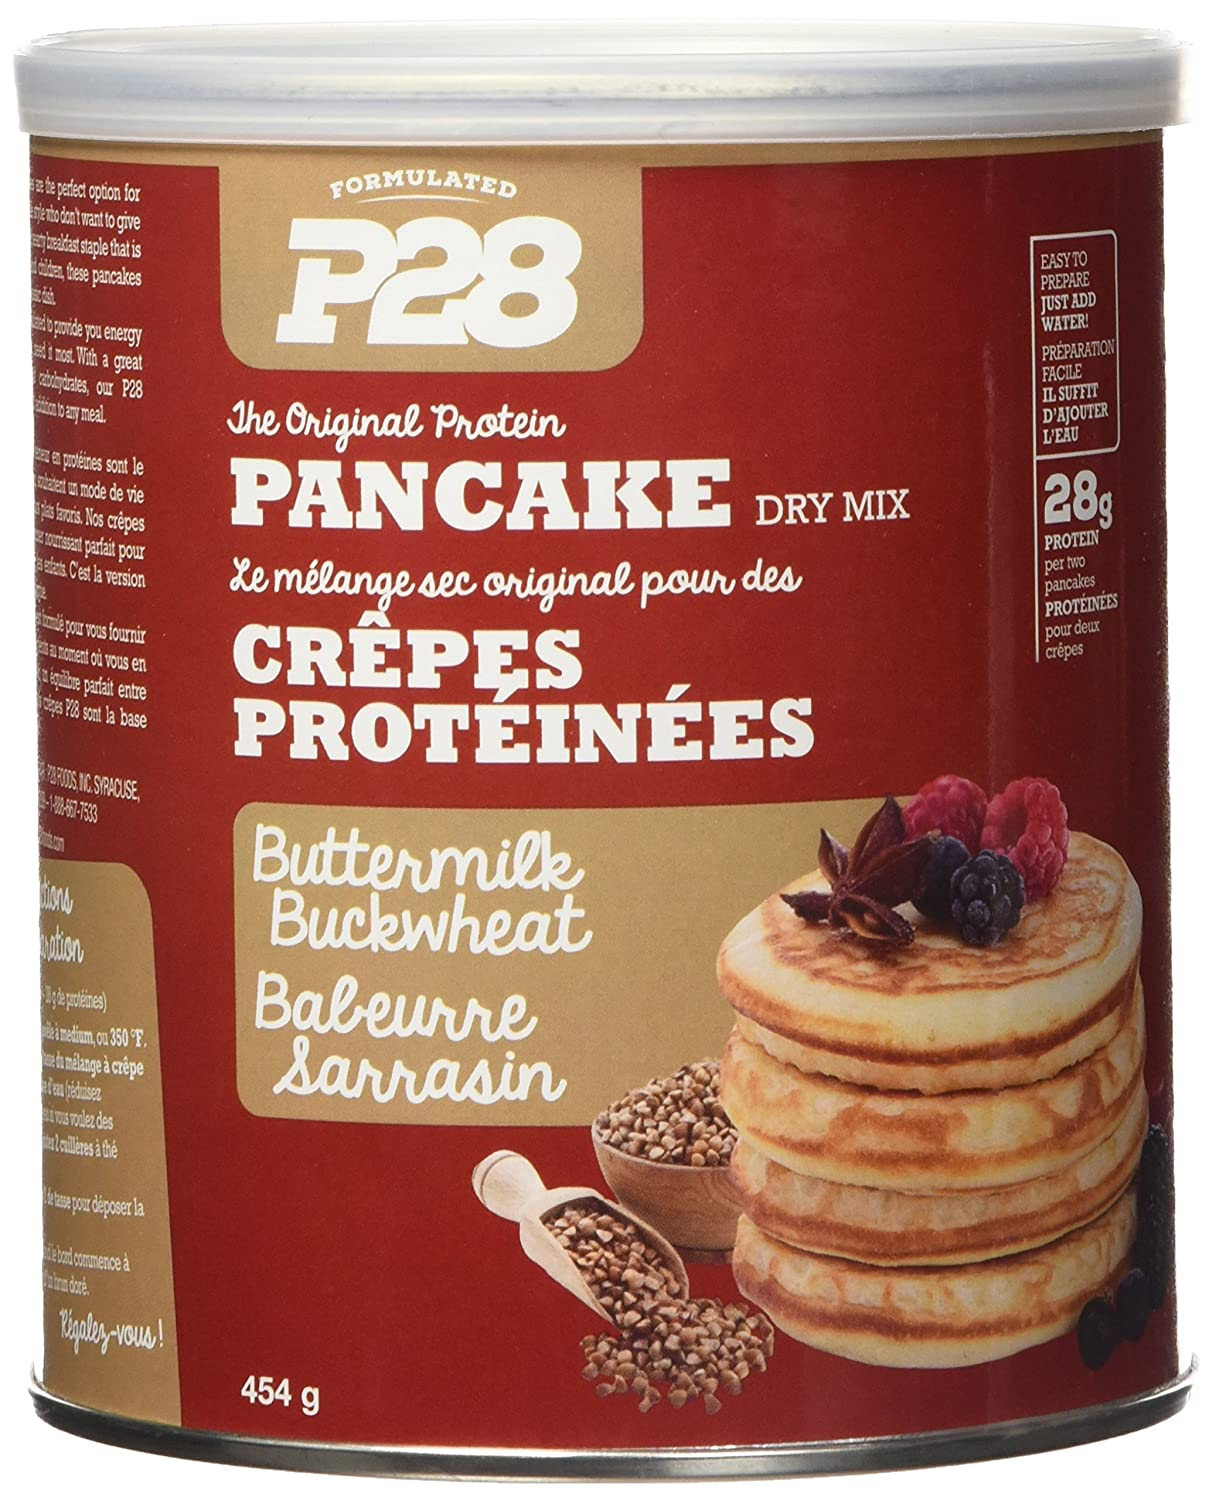 P28 Foods The Original High Protein Pancake Dry Mix